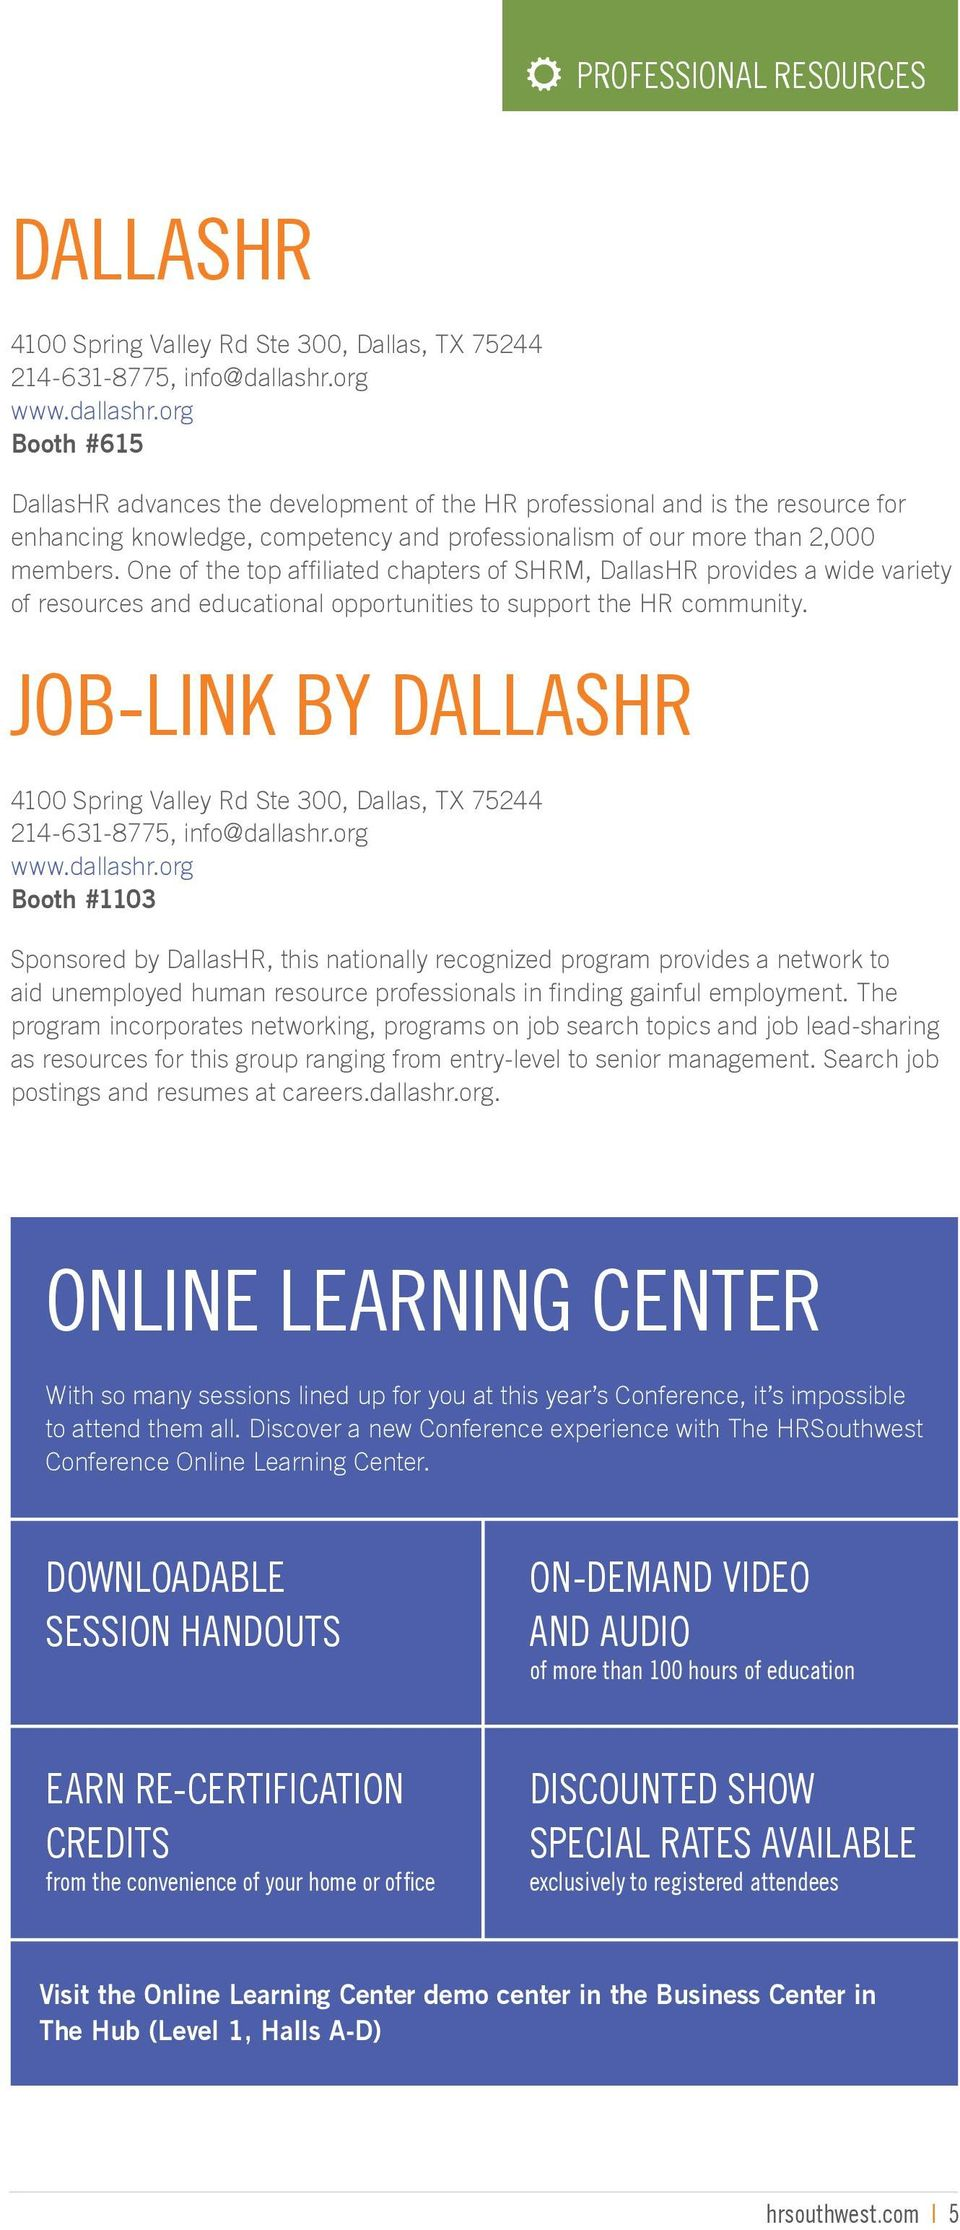 One of the top affiliated chapters of SHRM, DallasHR provides a wide variety of resources and educational opportunities to support the HR community.